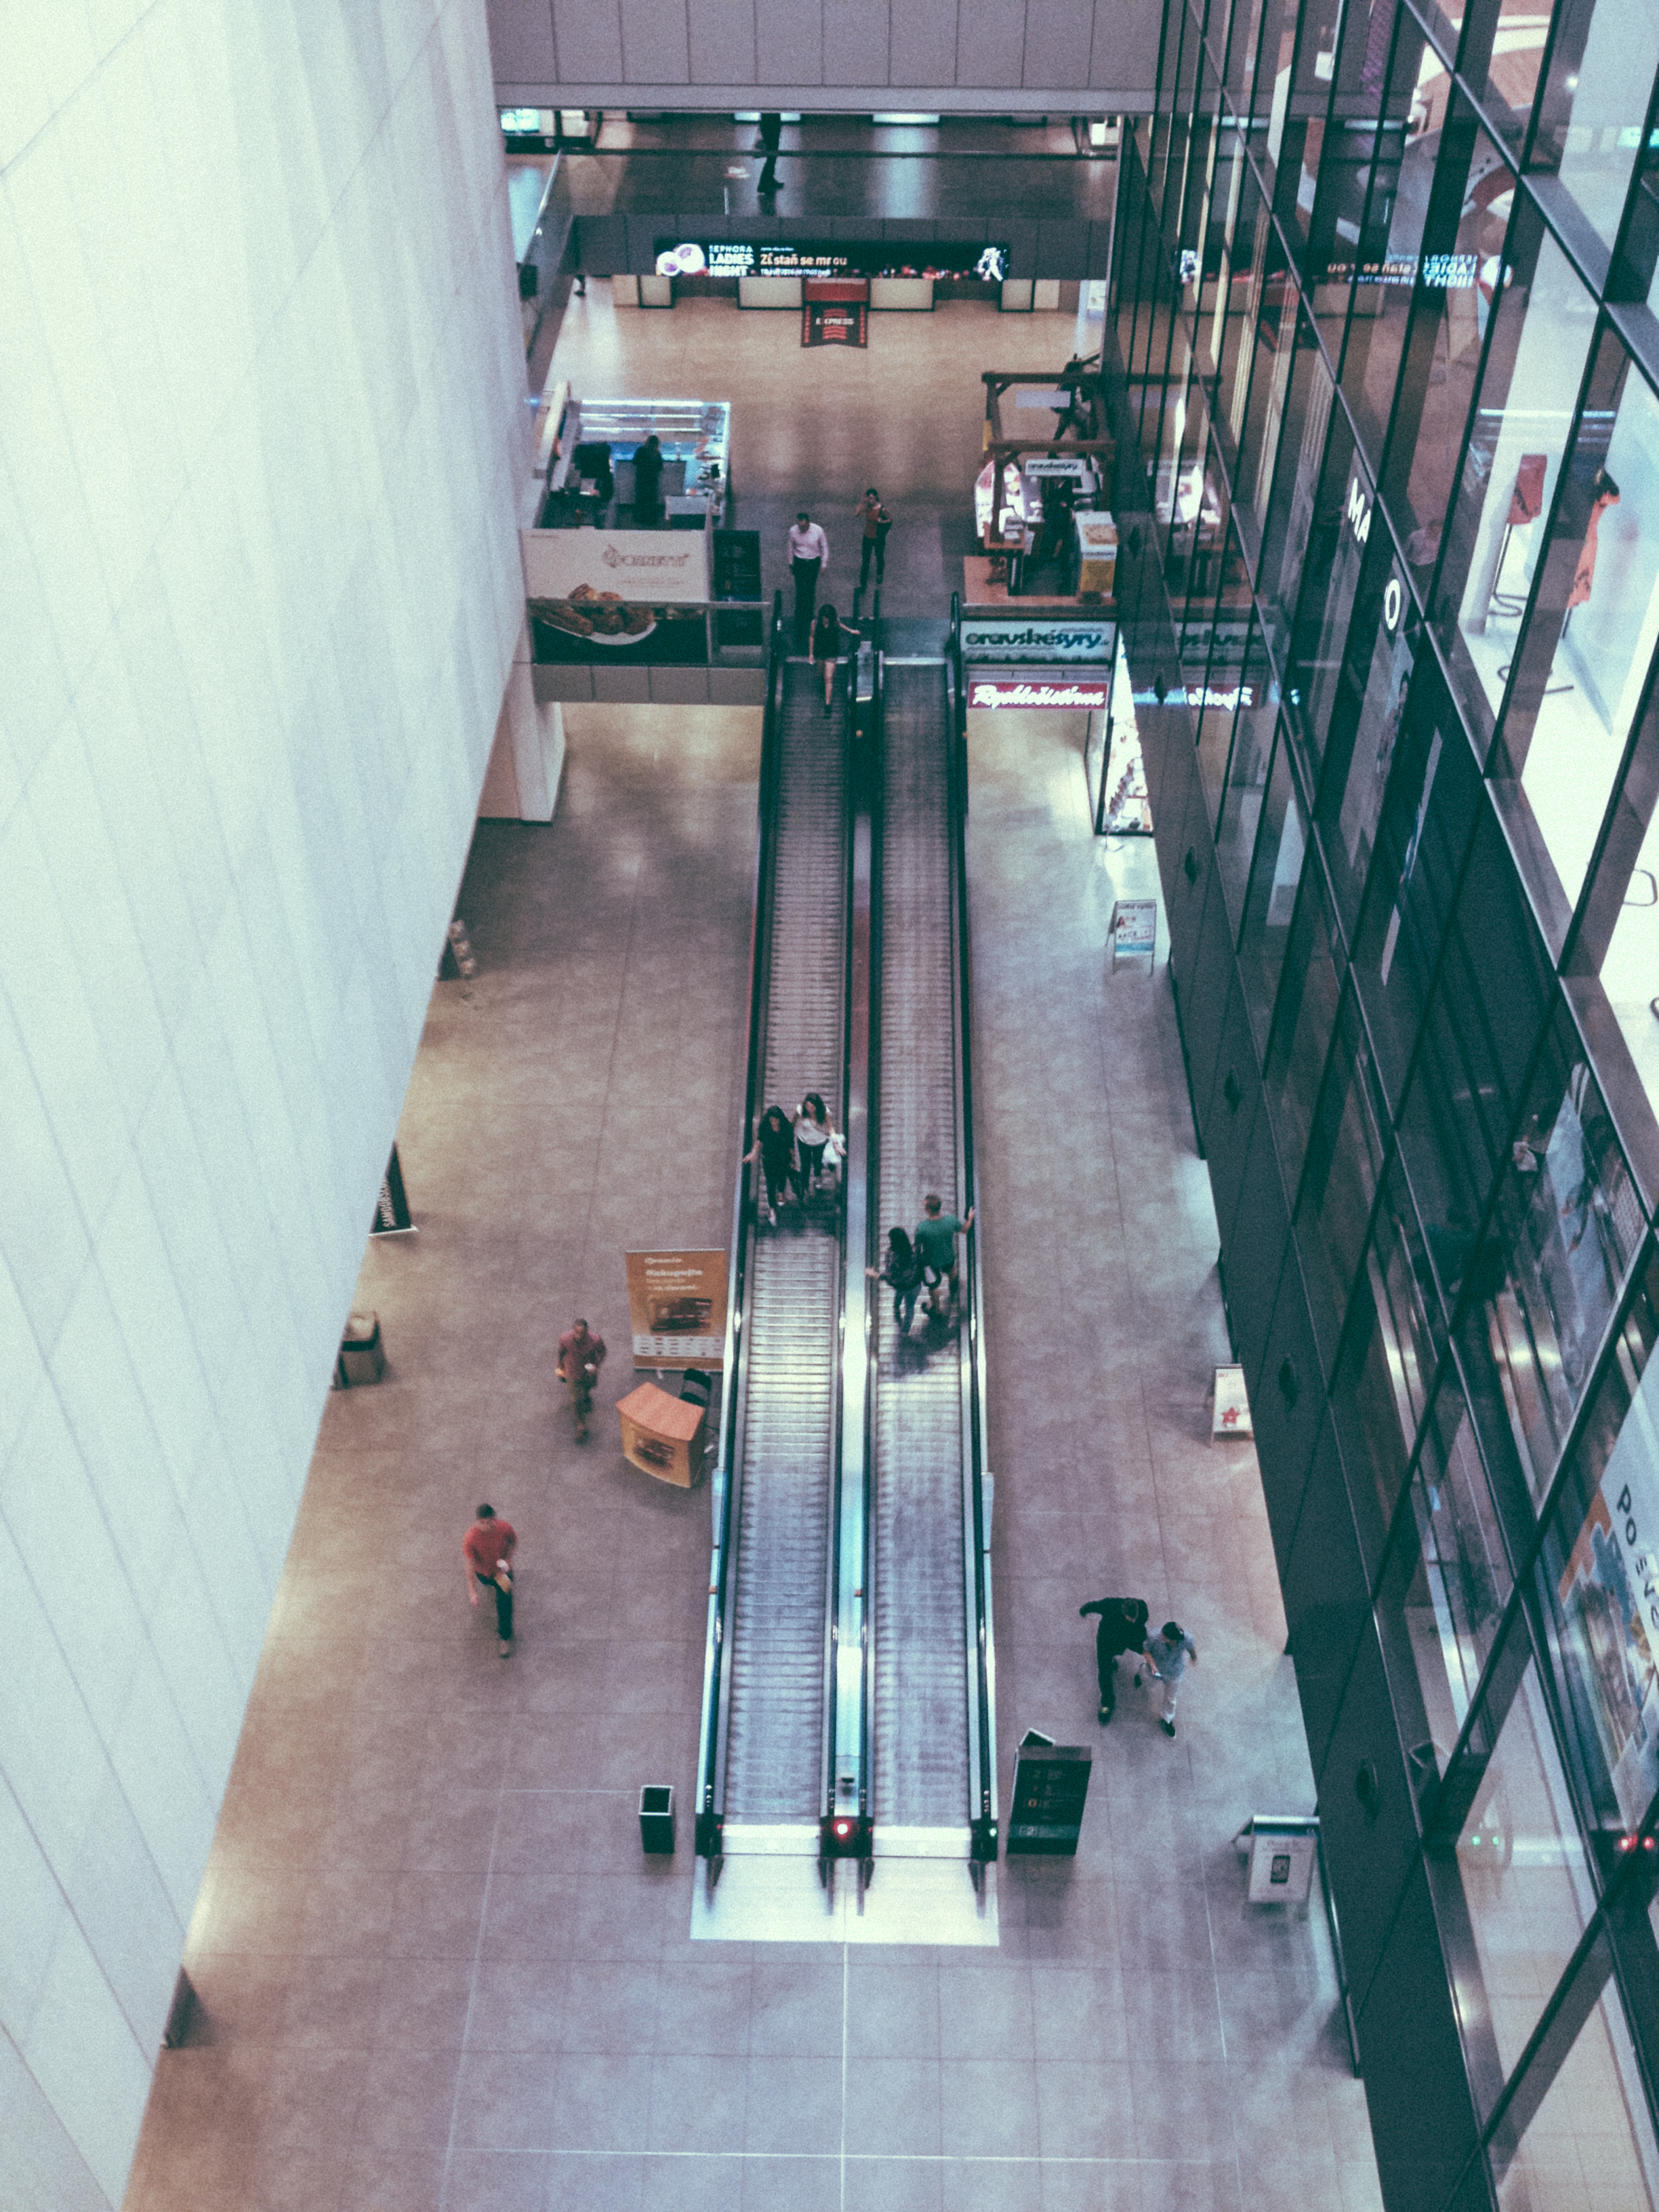 Arial view from one of the upper floors at the mall.